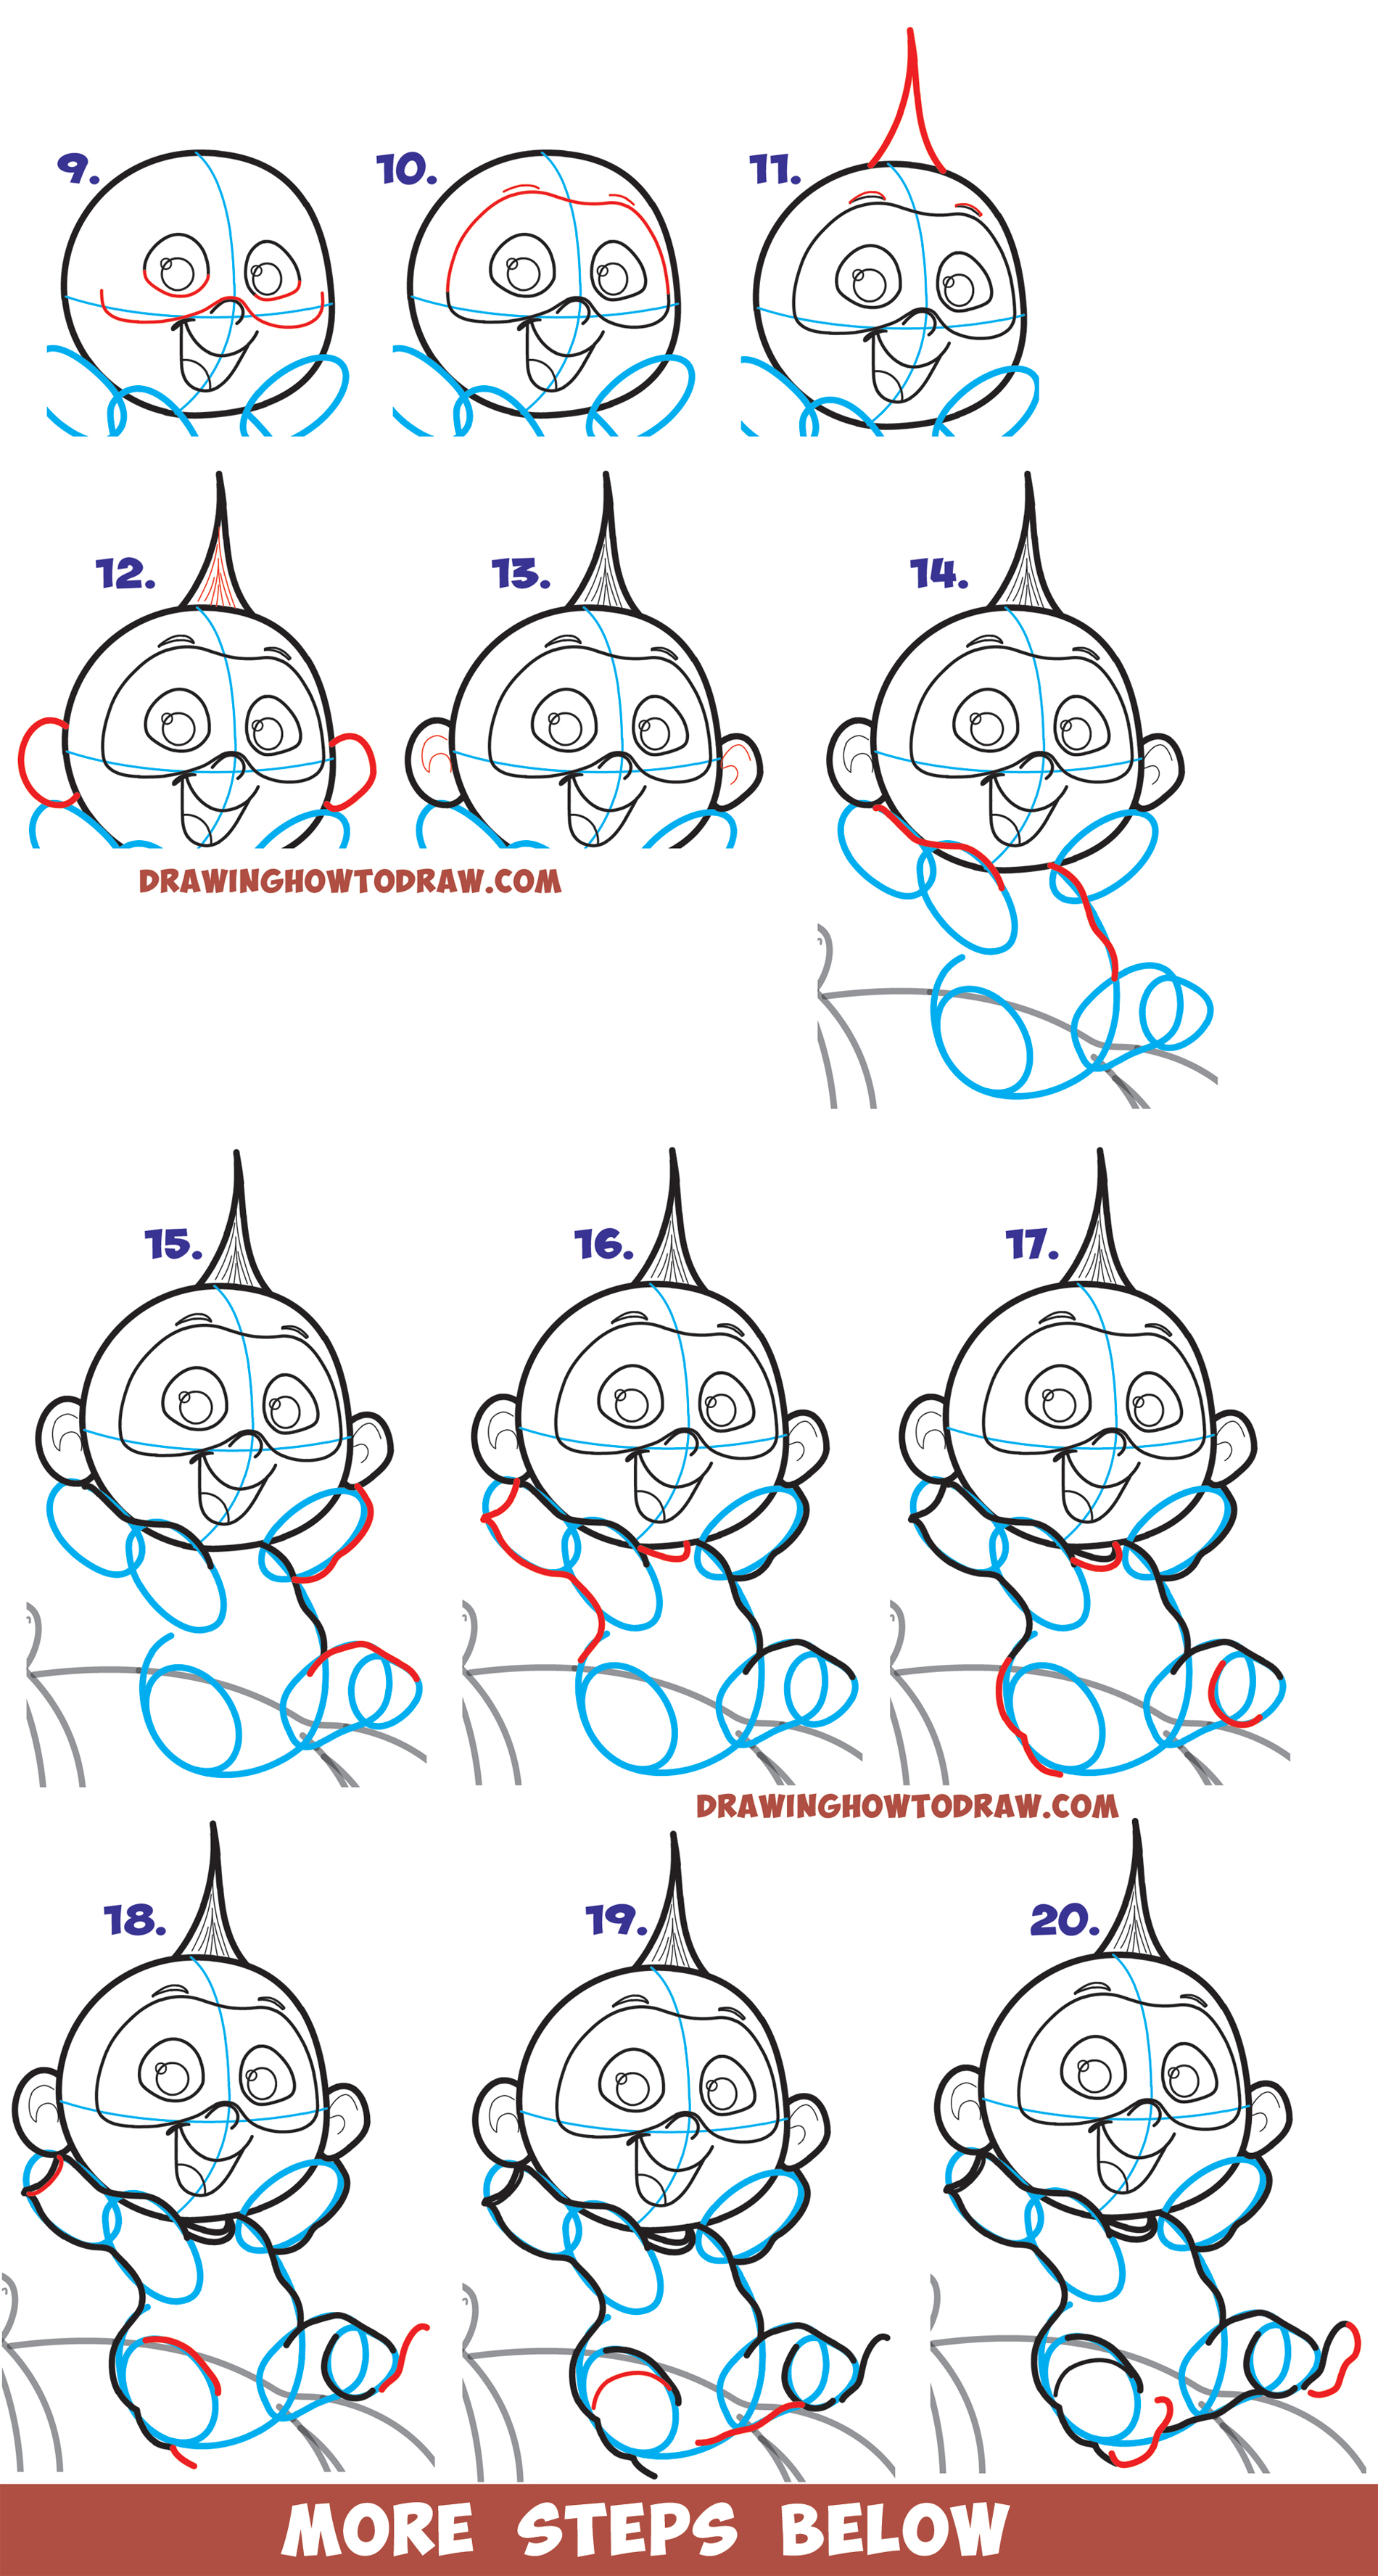 Learn How to Draw Jack Jack the baby from The Incredibles (Part 2 of Drawing The Incredibles 2 Family) Easy Step by Step Tutorial